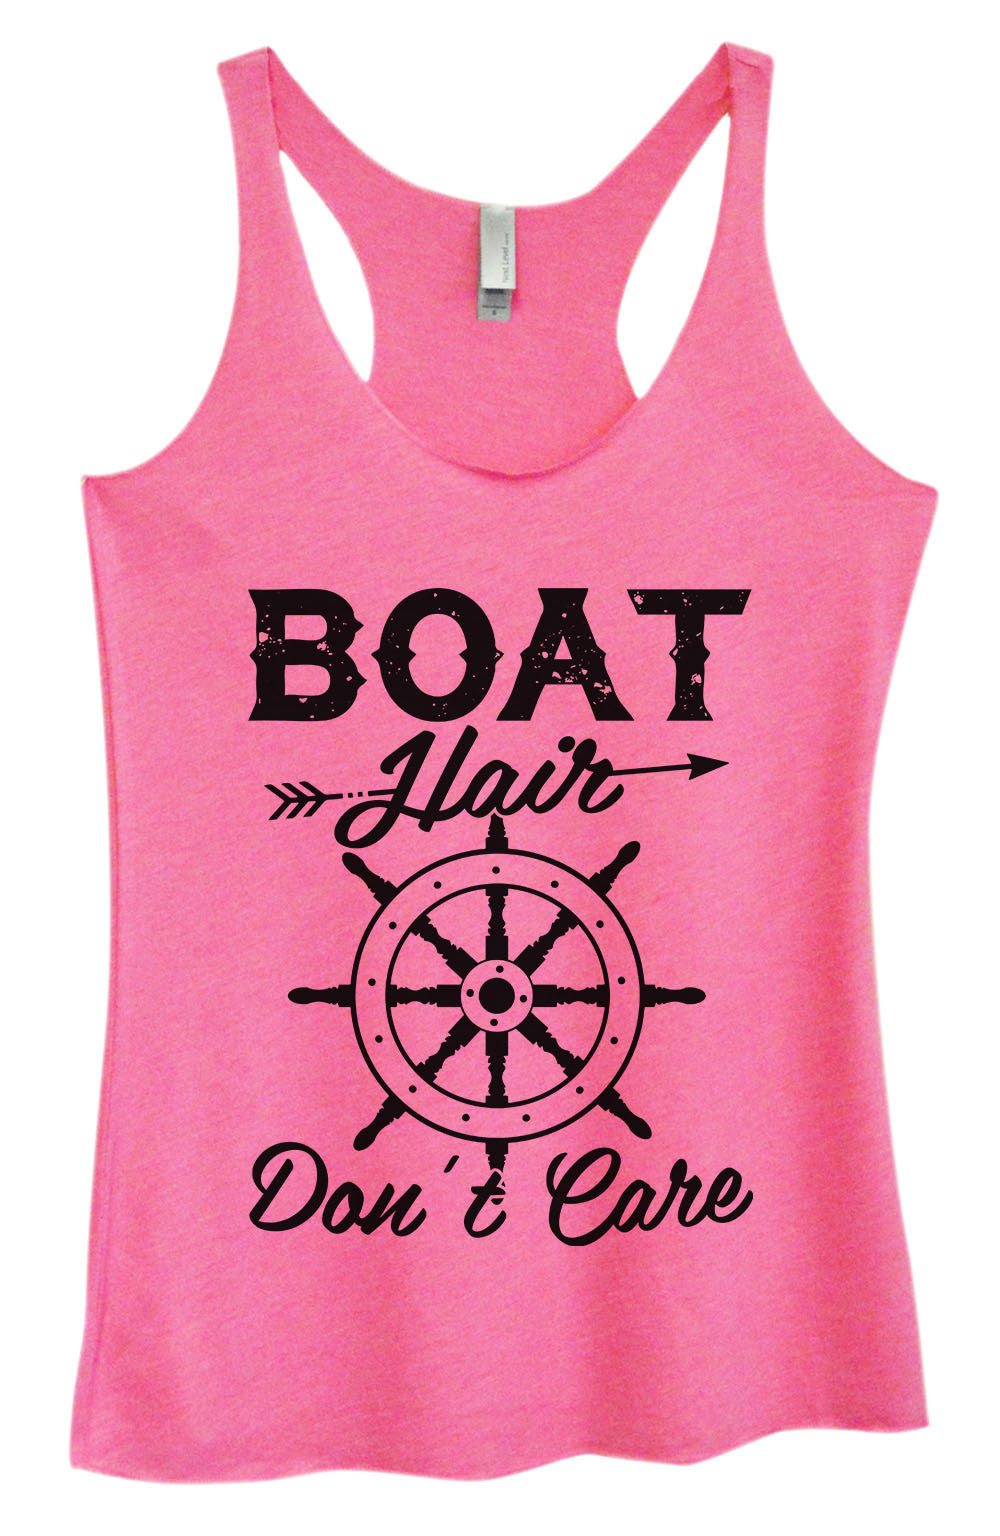 Womens Fashion Triblend Tank Top - Boat Hair Don't Care - Tri-1441 - Funny Shirts Tank Tops Burnouts and Triblends  - 1